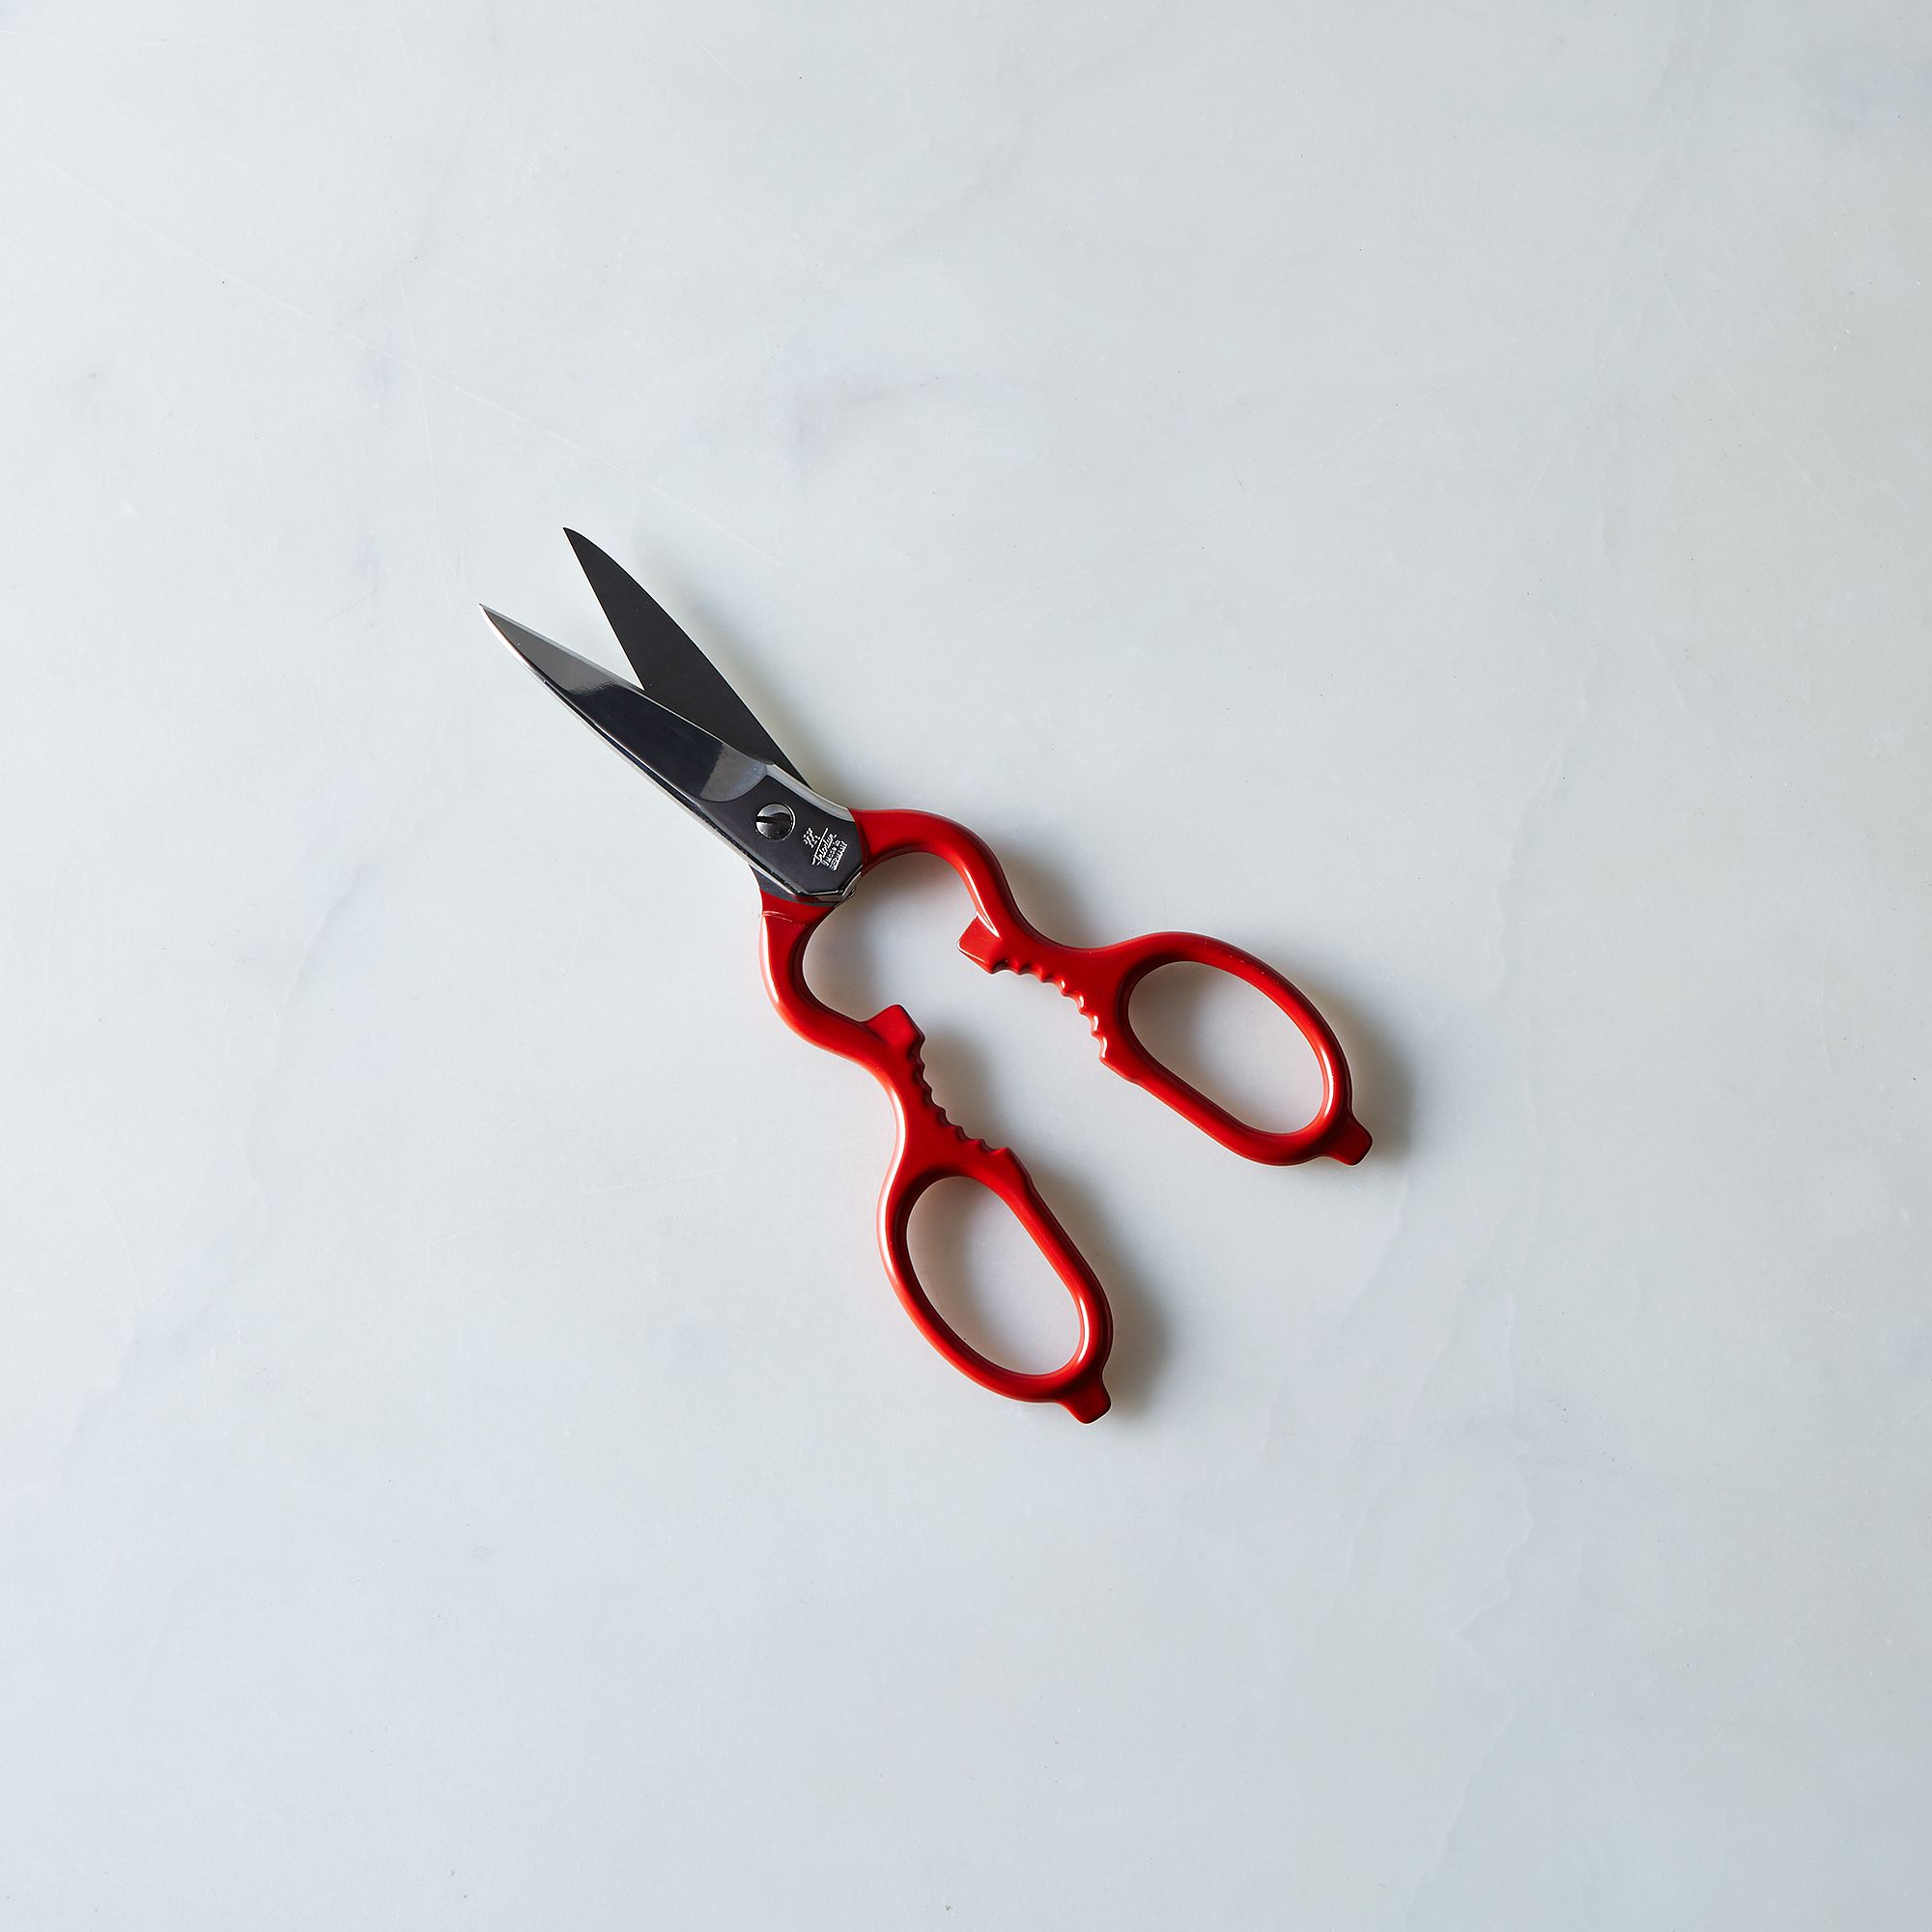 Dacfcfa0 23b4 4891 83ac 8ae41f9faad1  2015 0529 zwilling multi purpose kitchen shears red silo bobbi lin 0543